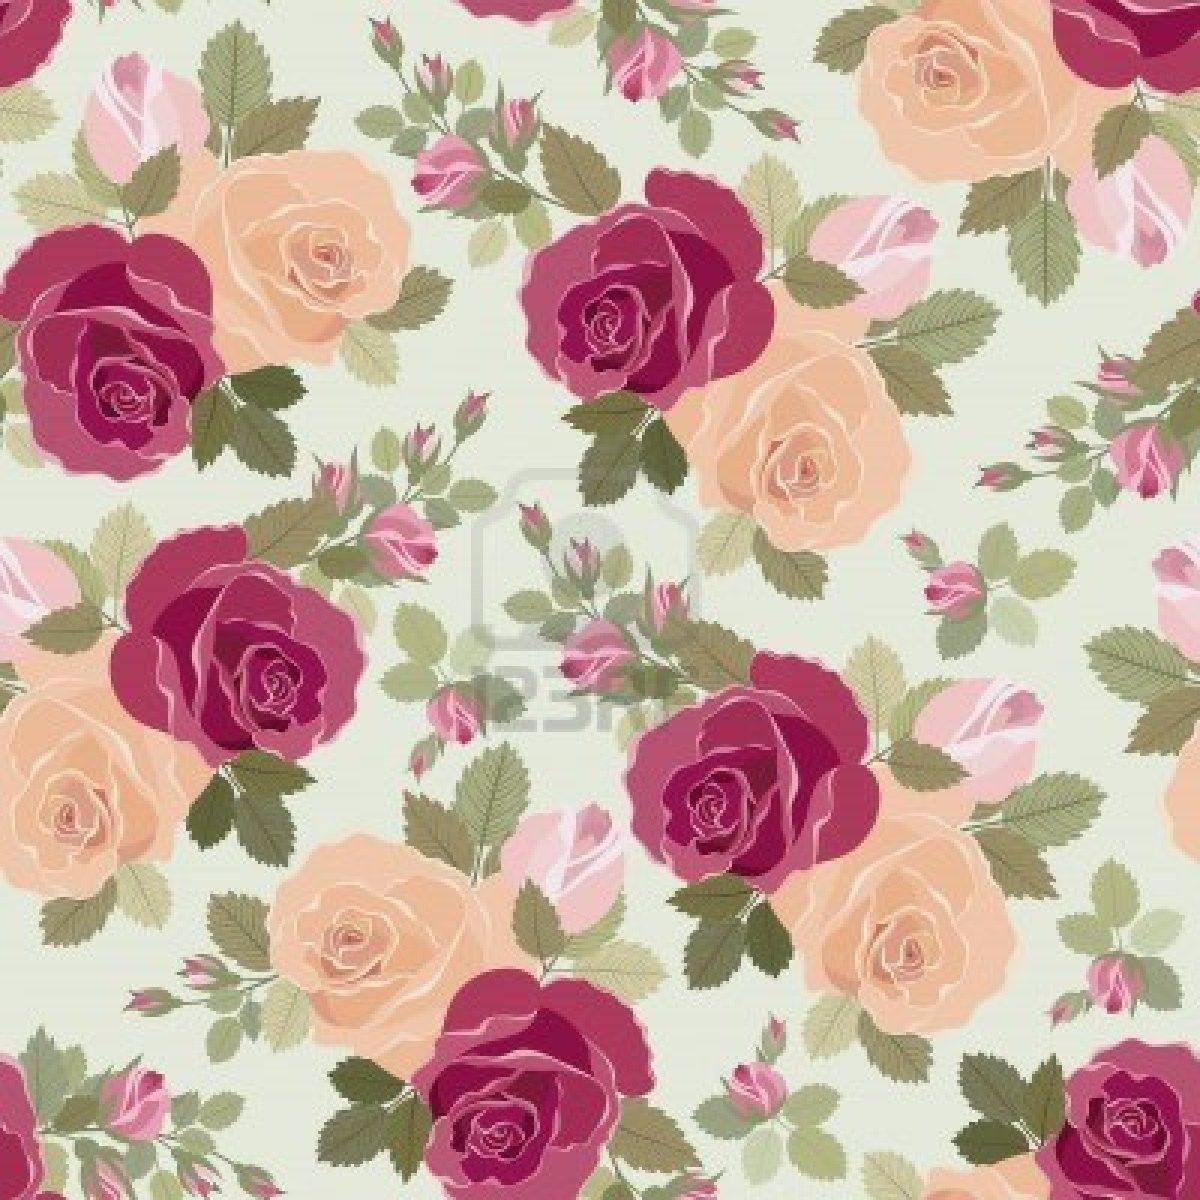 Floral Background Hd Tumblr